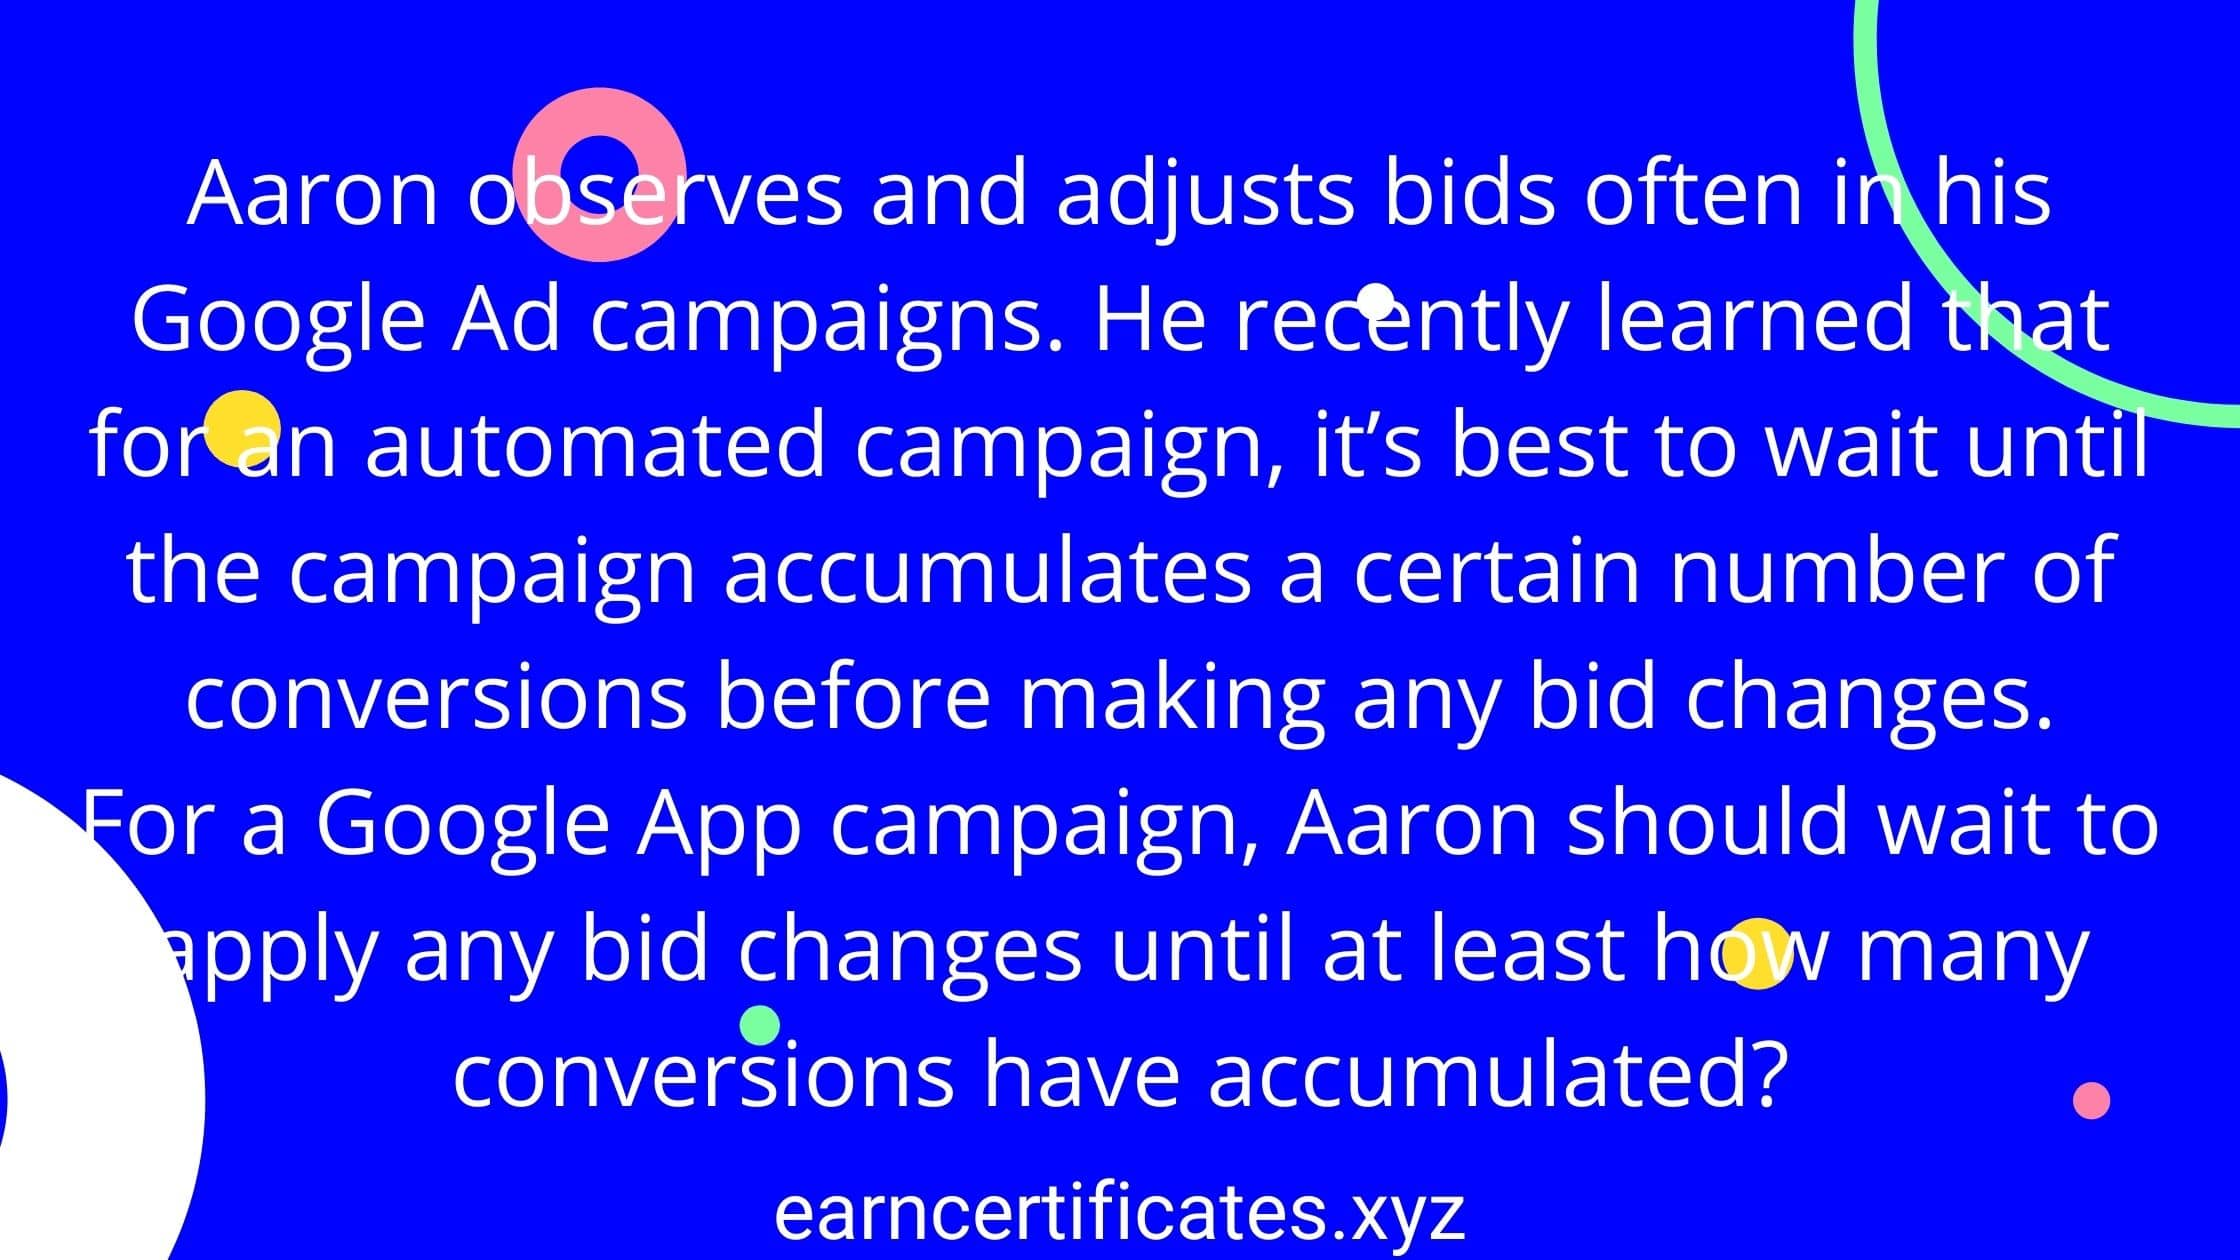 Aaron observes and adjusts bids often in his Google Ad campaigns. He recently learned that for an automated campaign, it's best to wait until the campaign accumulates a certain number of conversions before making any bid changes. For a Google App campaign, Aaron should wait to apply any bid changes until at least how many conversions have accumulated?